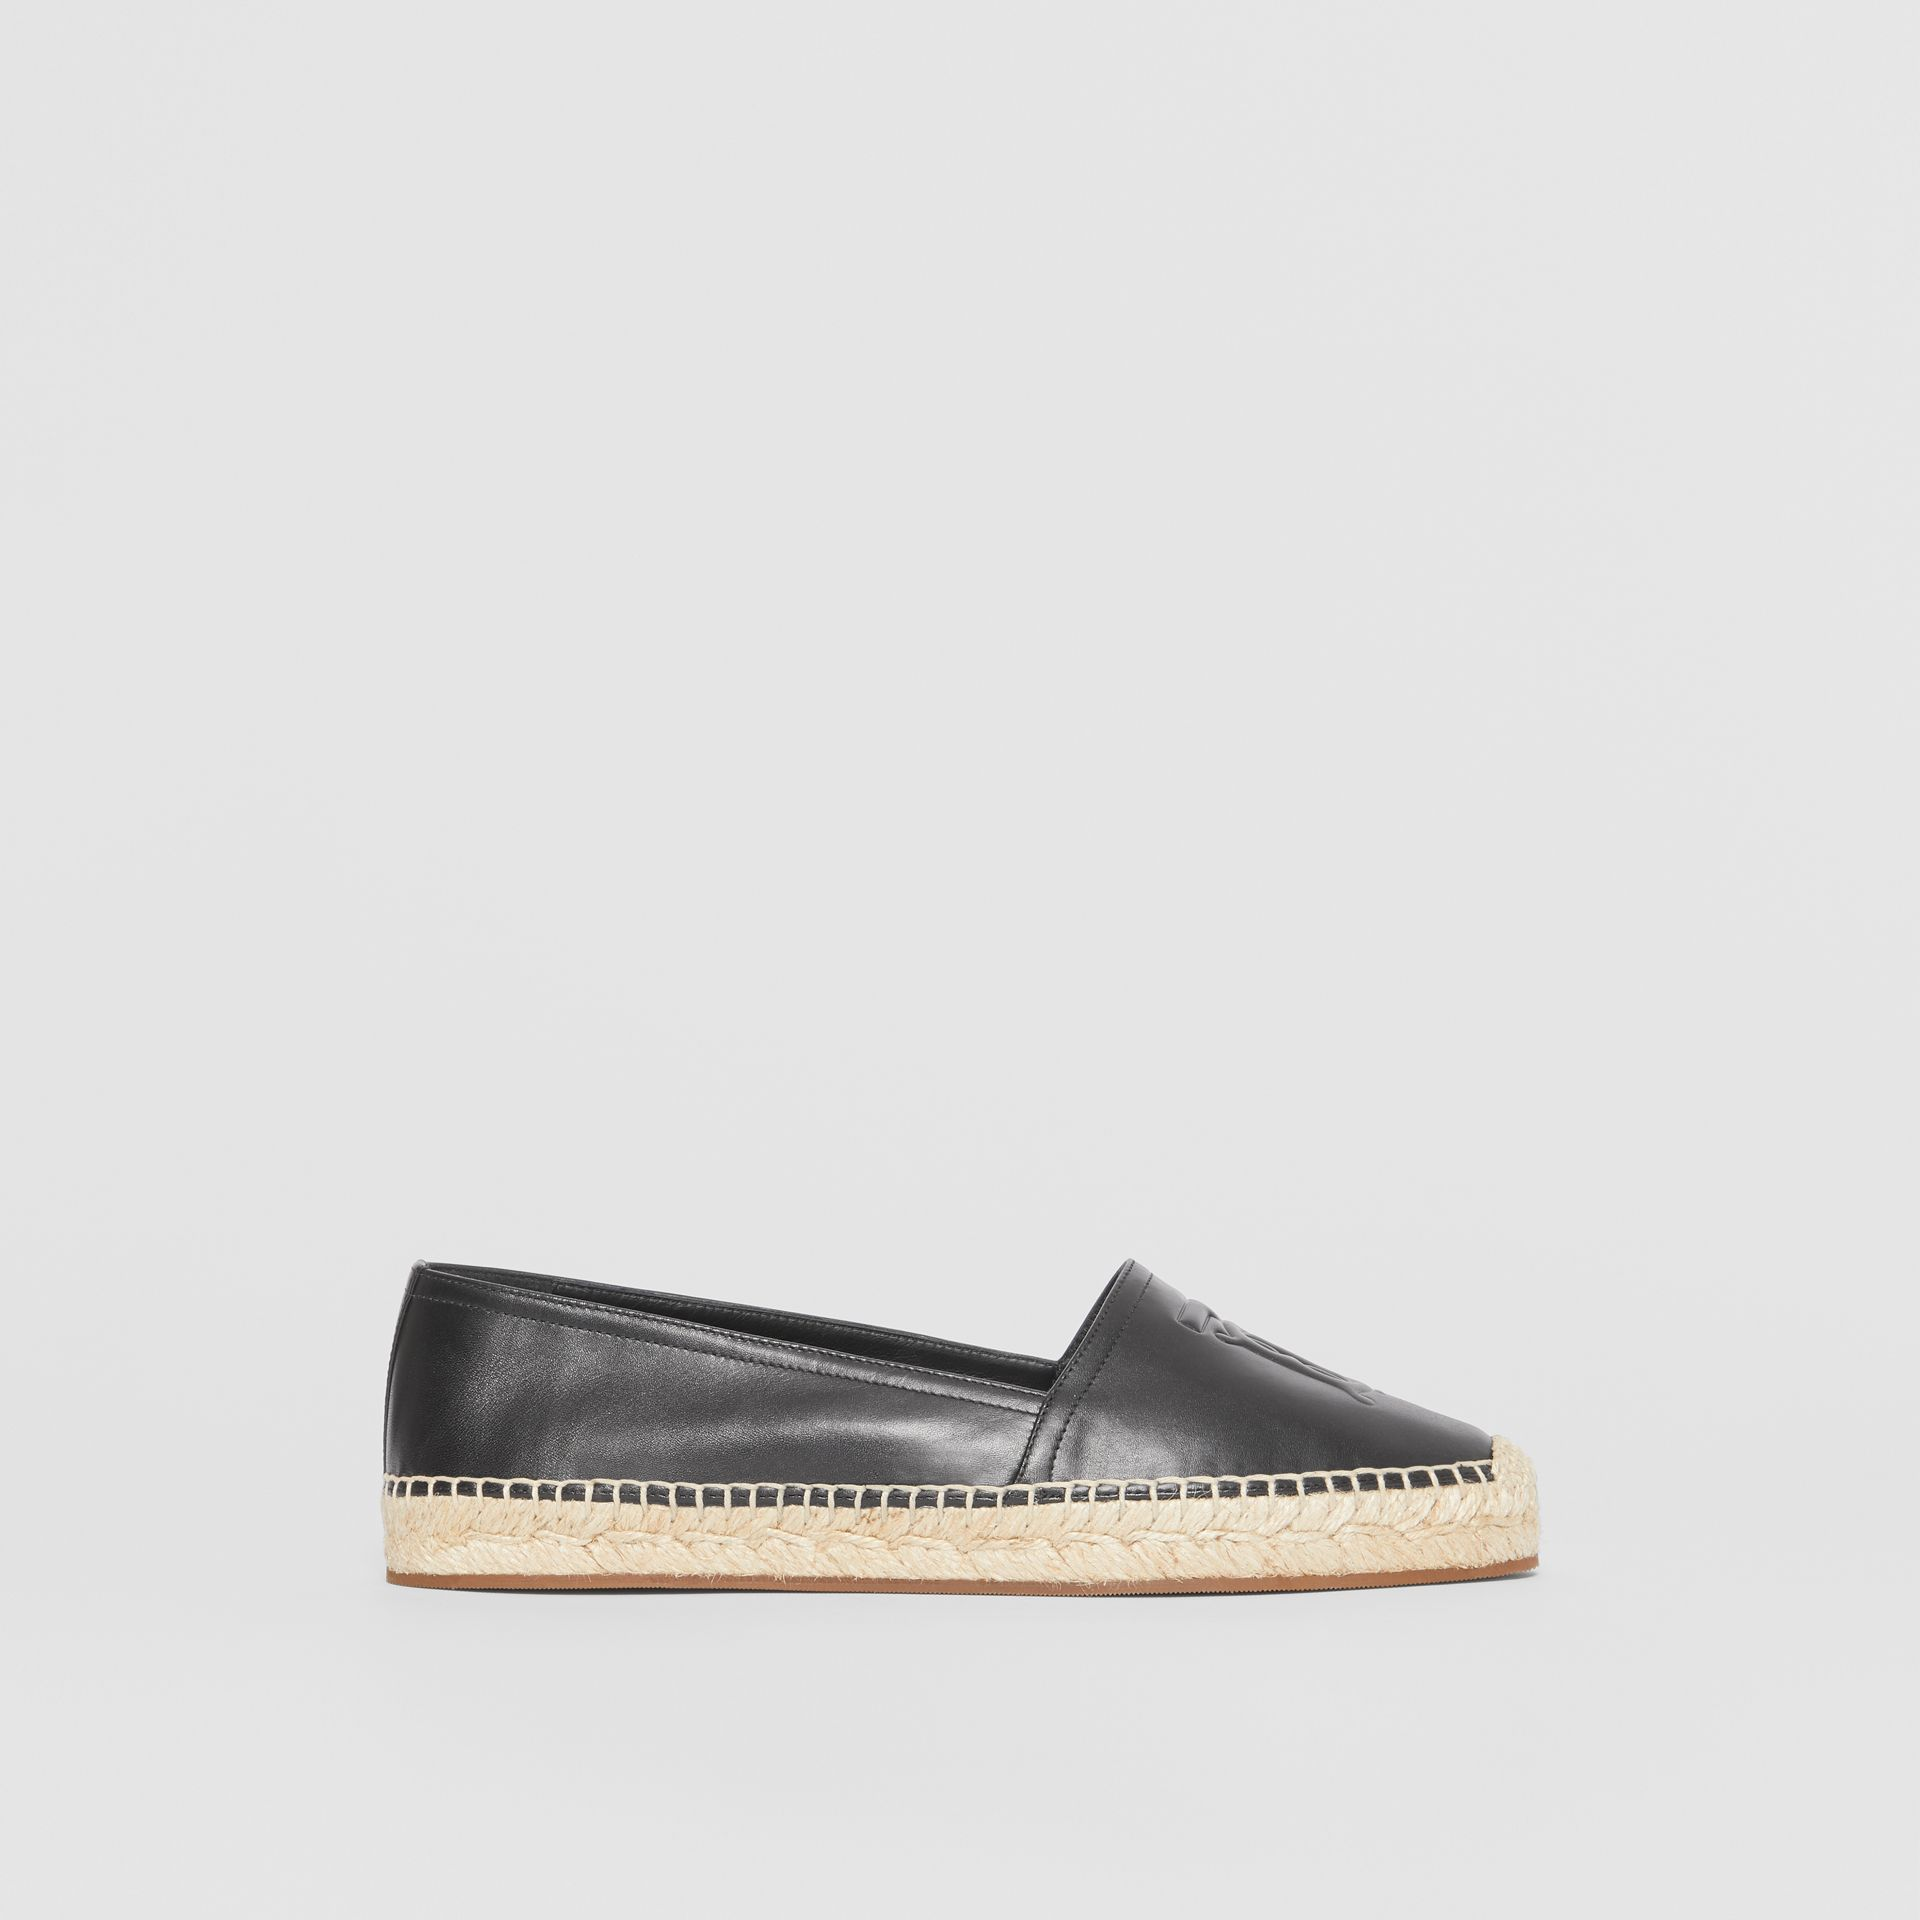 Monogram Motif Leather Espadrilles in Black - Women | Burberry - gallery image 5